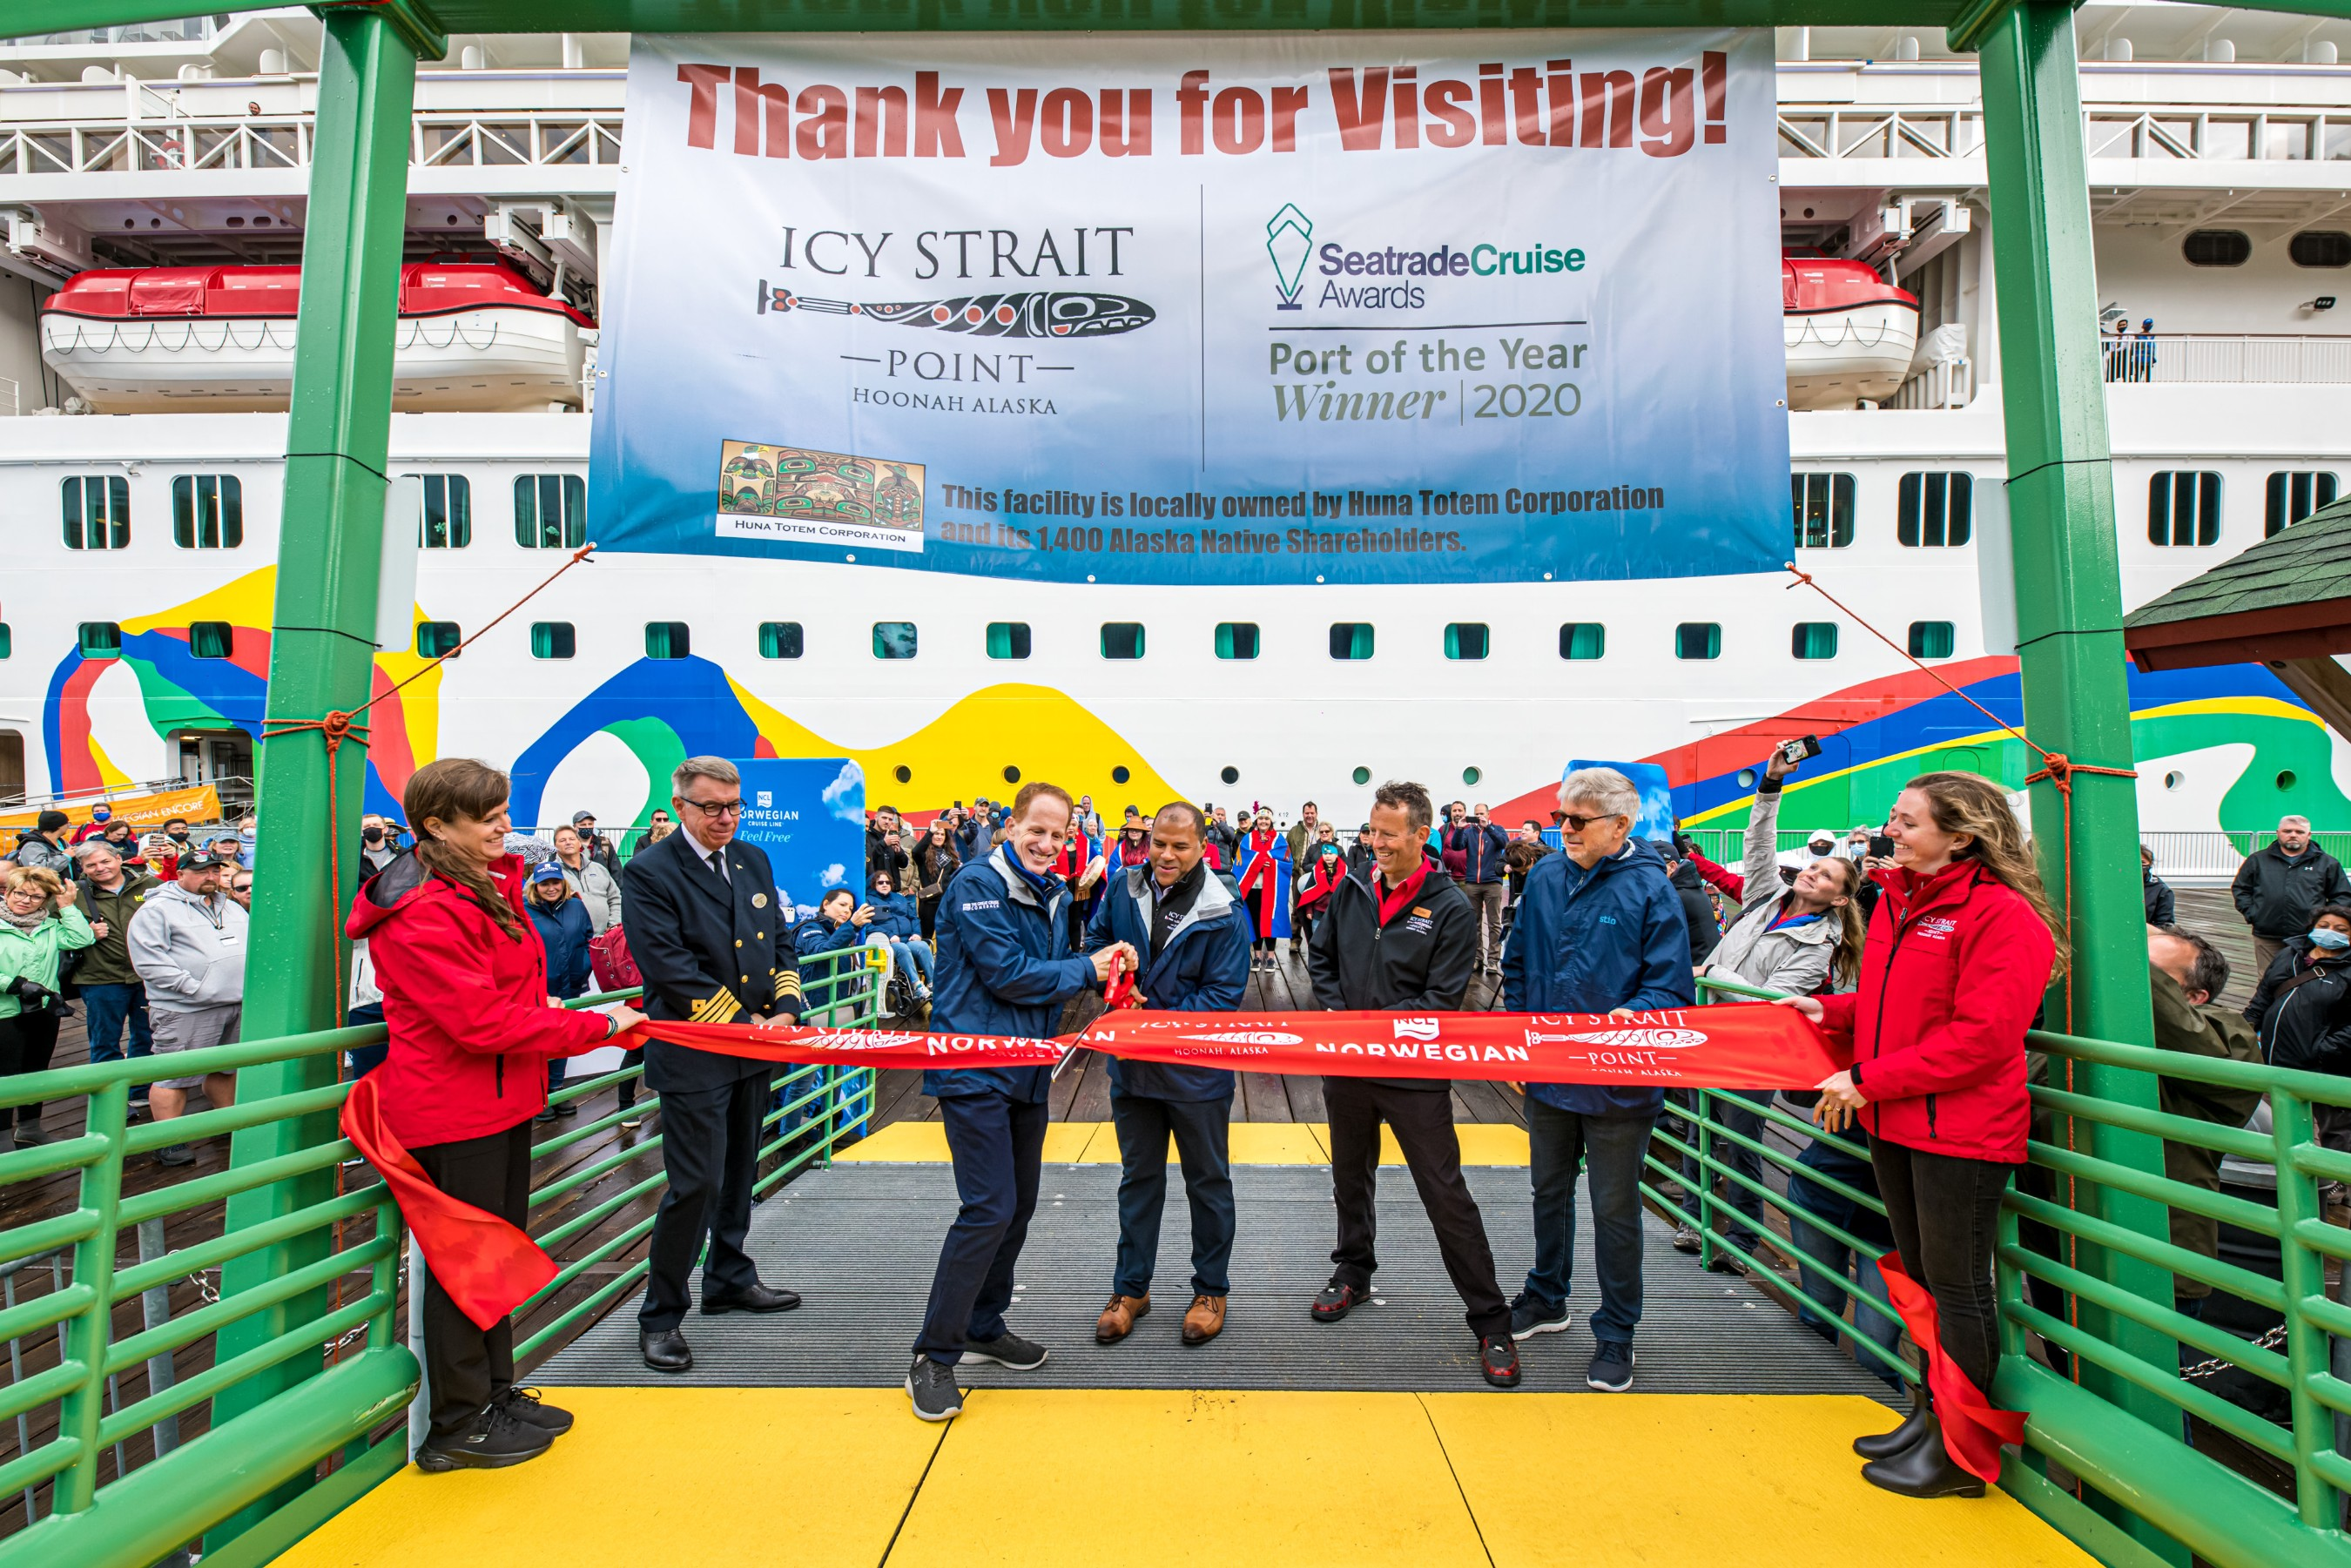 A ribbon cutting ceremony was held on Aug. 10, 2021 in Icy Strait Point, Alaska to celebrate the opening of the new Wilderness Landing pier built in partnership with Norwegian Cruise Line Holdings Ltd. and Huna Totem Corporation. NCL President and CEO Harry Sommer and Huna Totem Corporation CEO Russell Dick ceremoniously cut the ribbon and open the new pier. Photos by Alive Coverage  (August 2021)